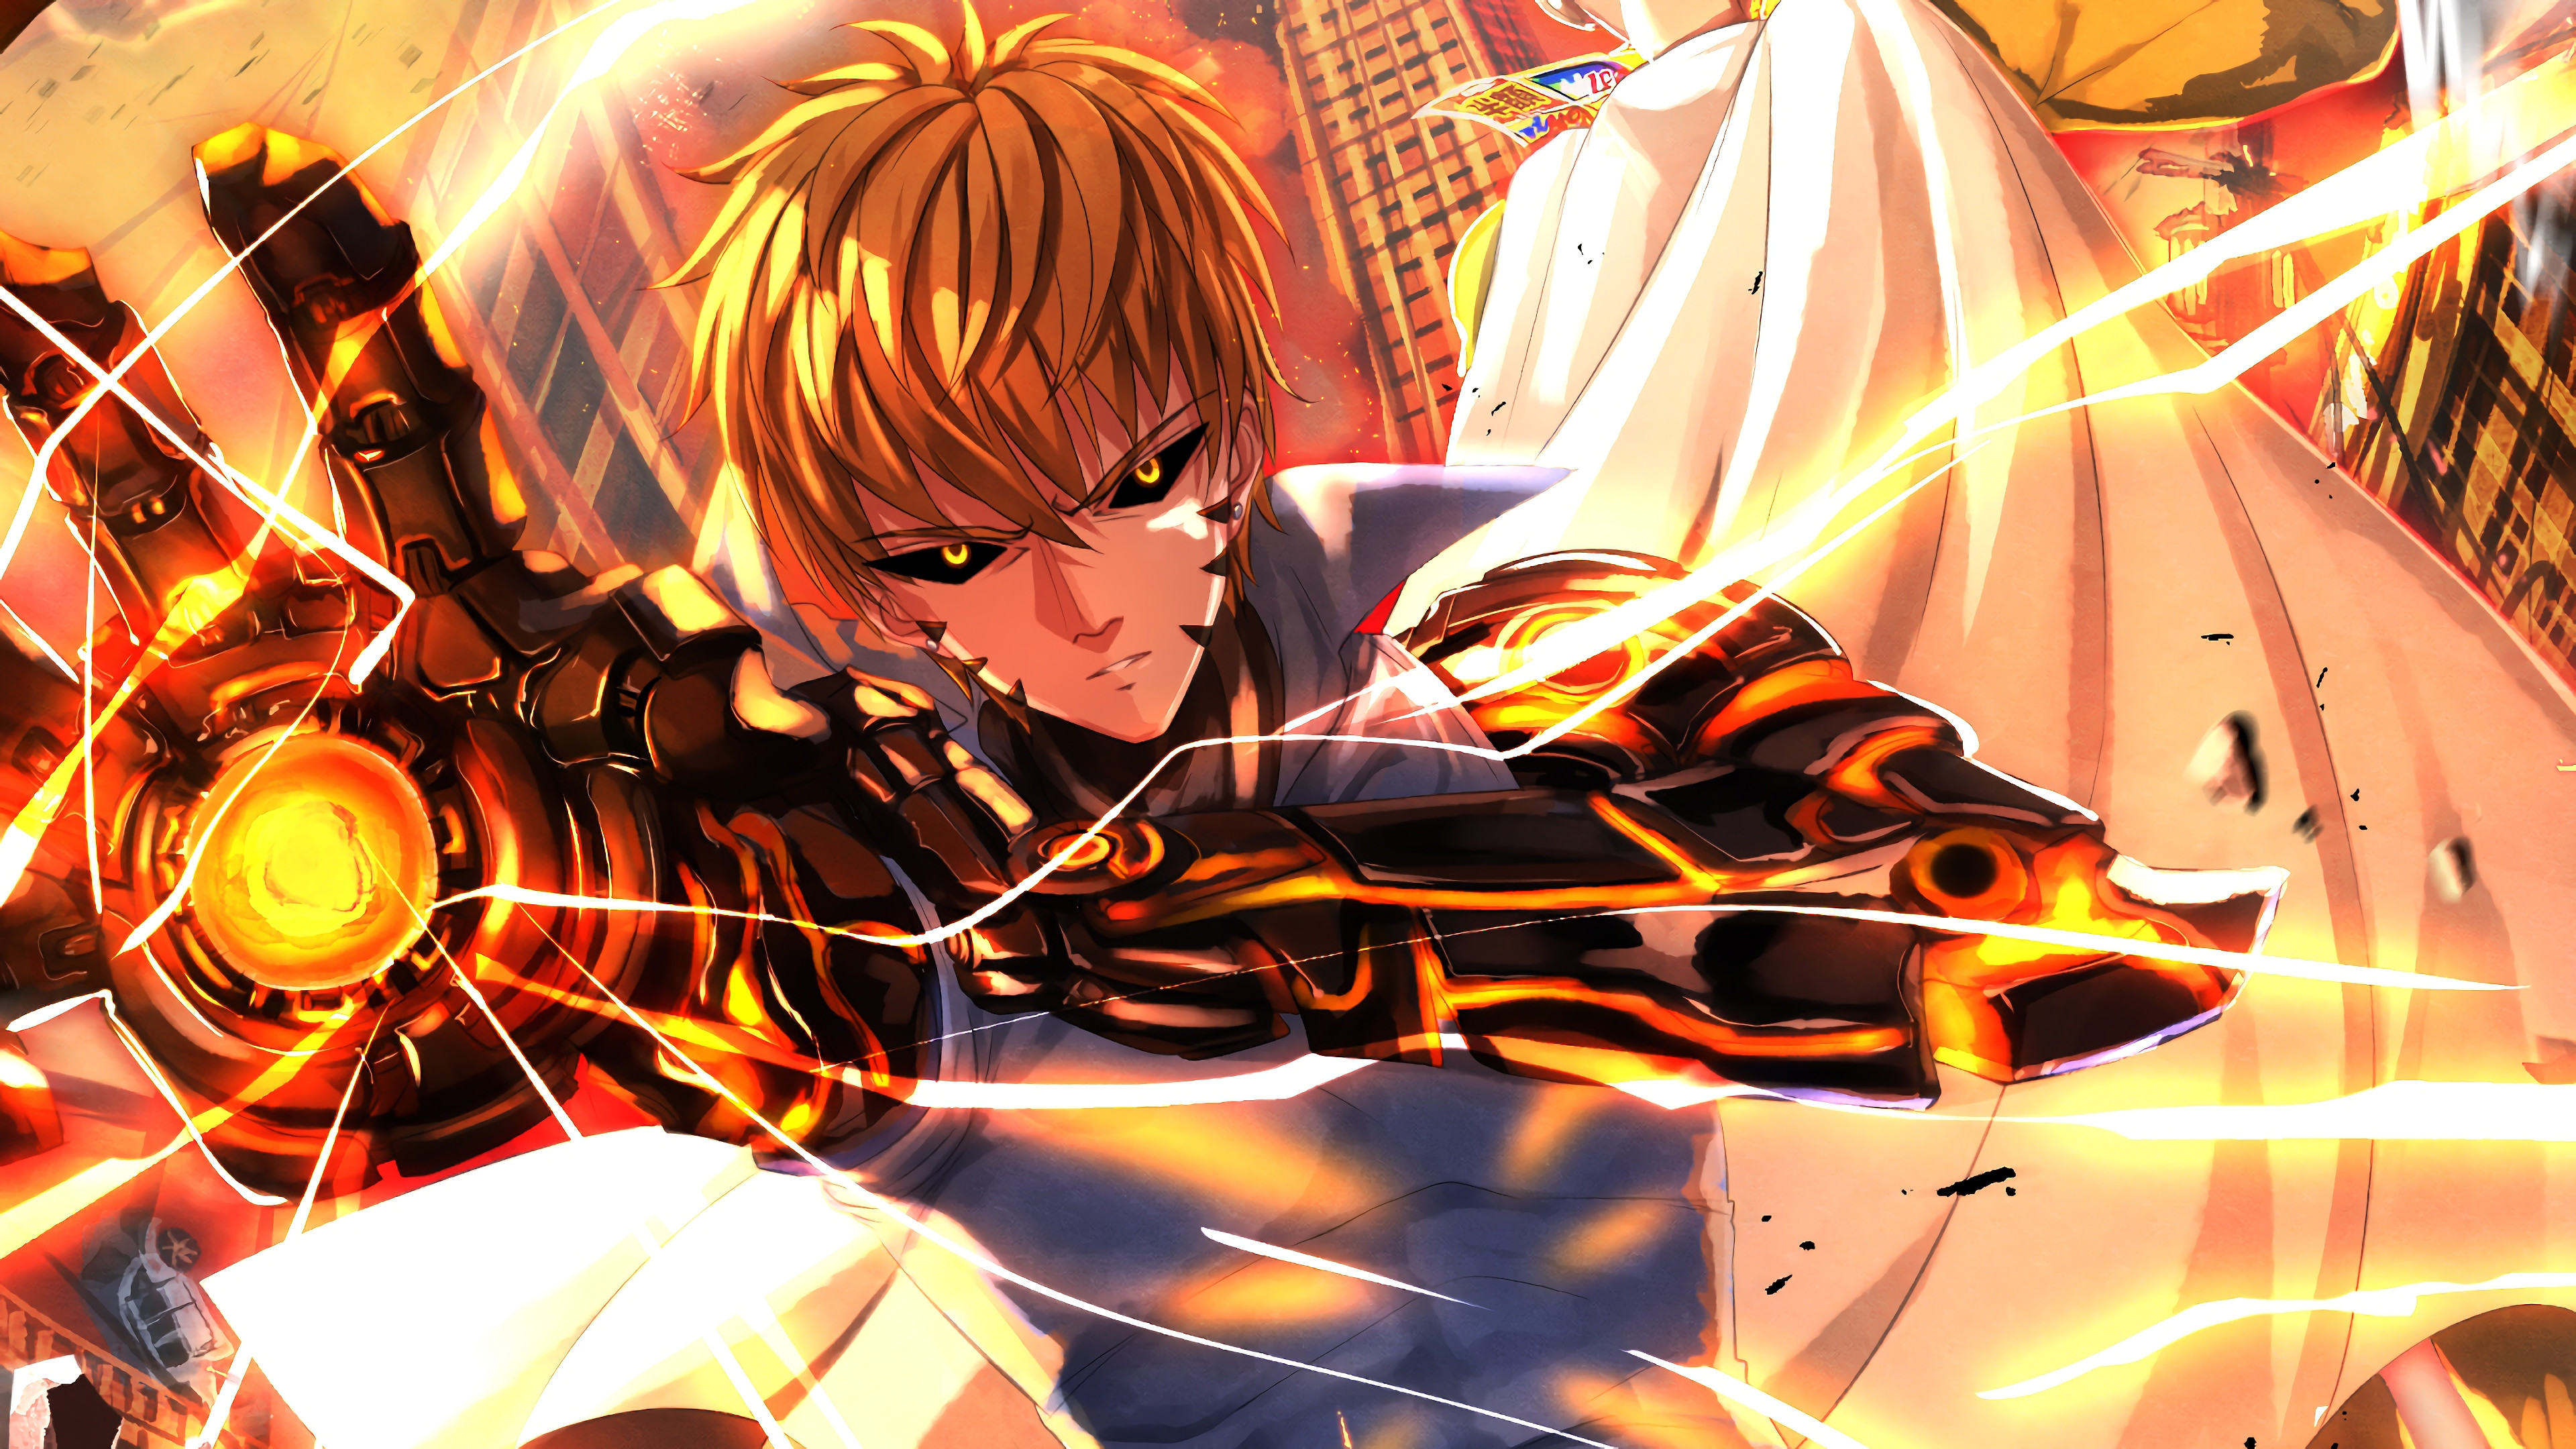 Genos One Punch Man Anime Wallpaper 4k Ultra Hd Id 3220